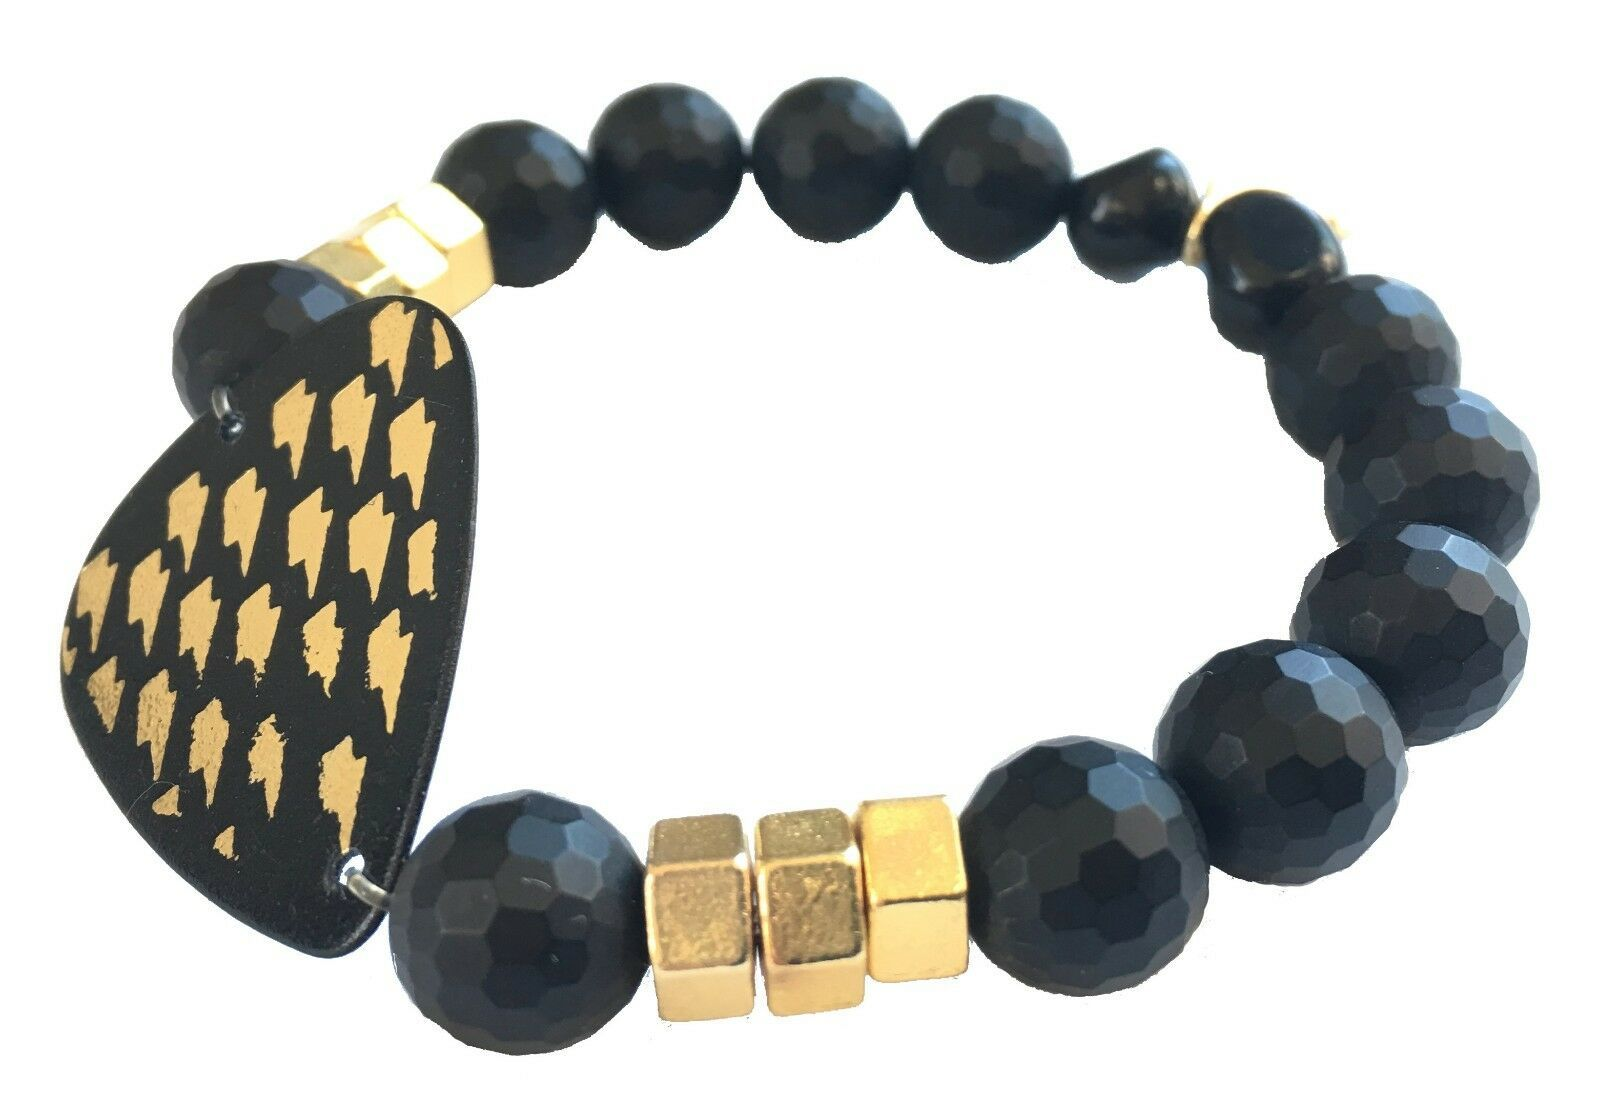 Electric Picks Gold Glimmer Thunder Bolt and Nuts Hardware Black Onyx Bracelet